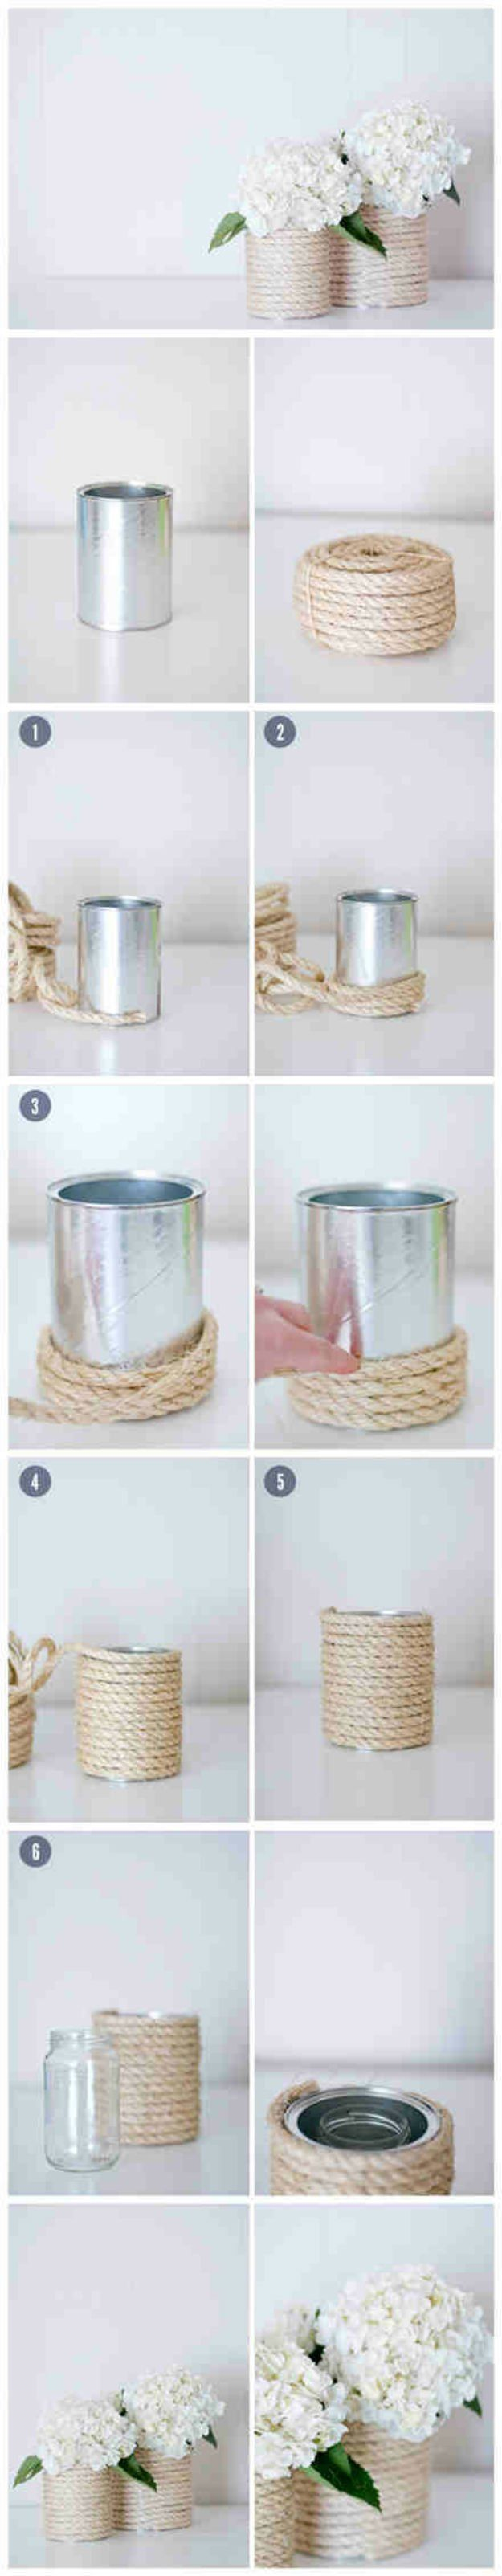 25 Diy Gifts You Can Make In Under An Hour Diyready Com Easy Diy